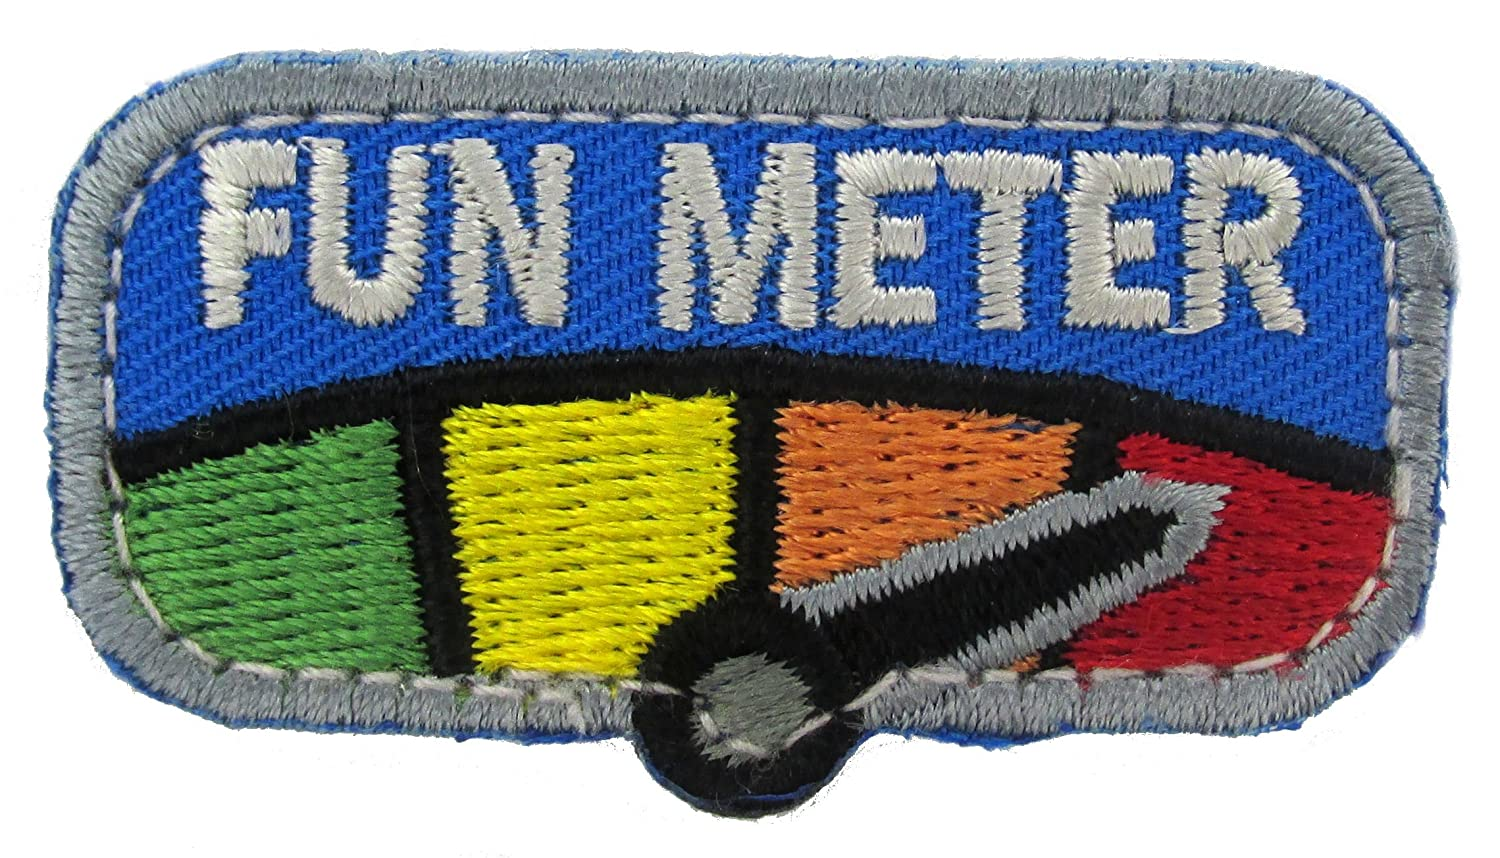 MIL-SPEC Fun Meter Patch Full Color Mil-Spec Monkey